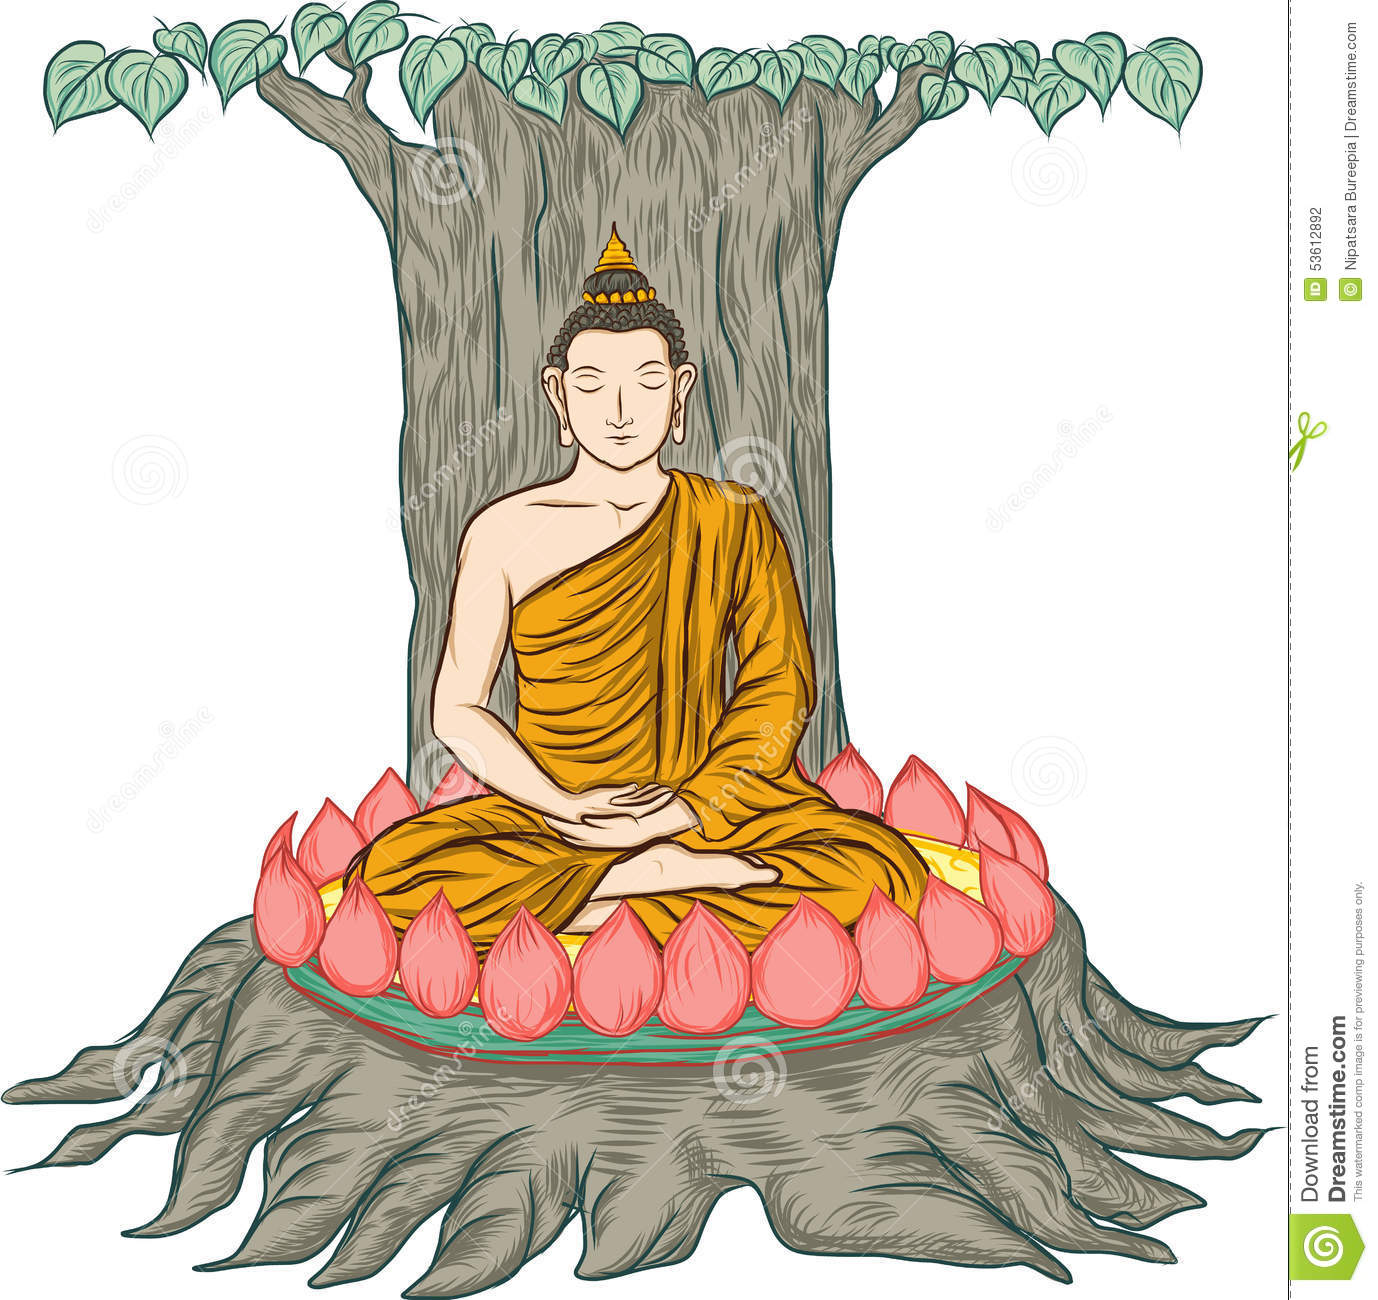 Tree of enlightenment clipart.